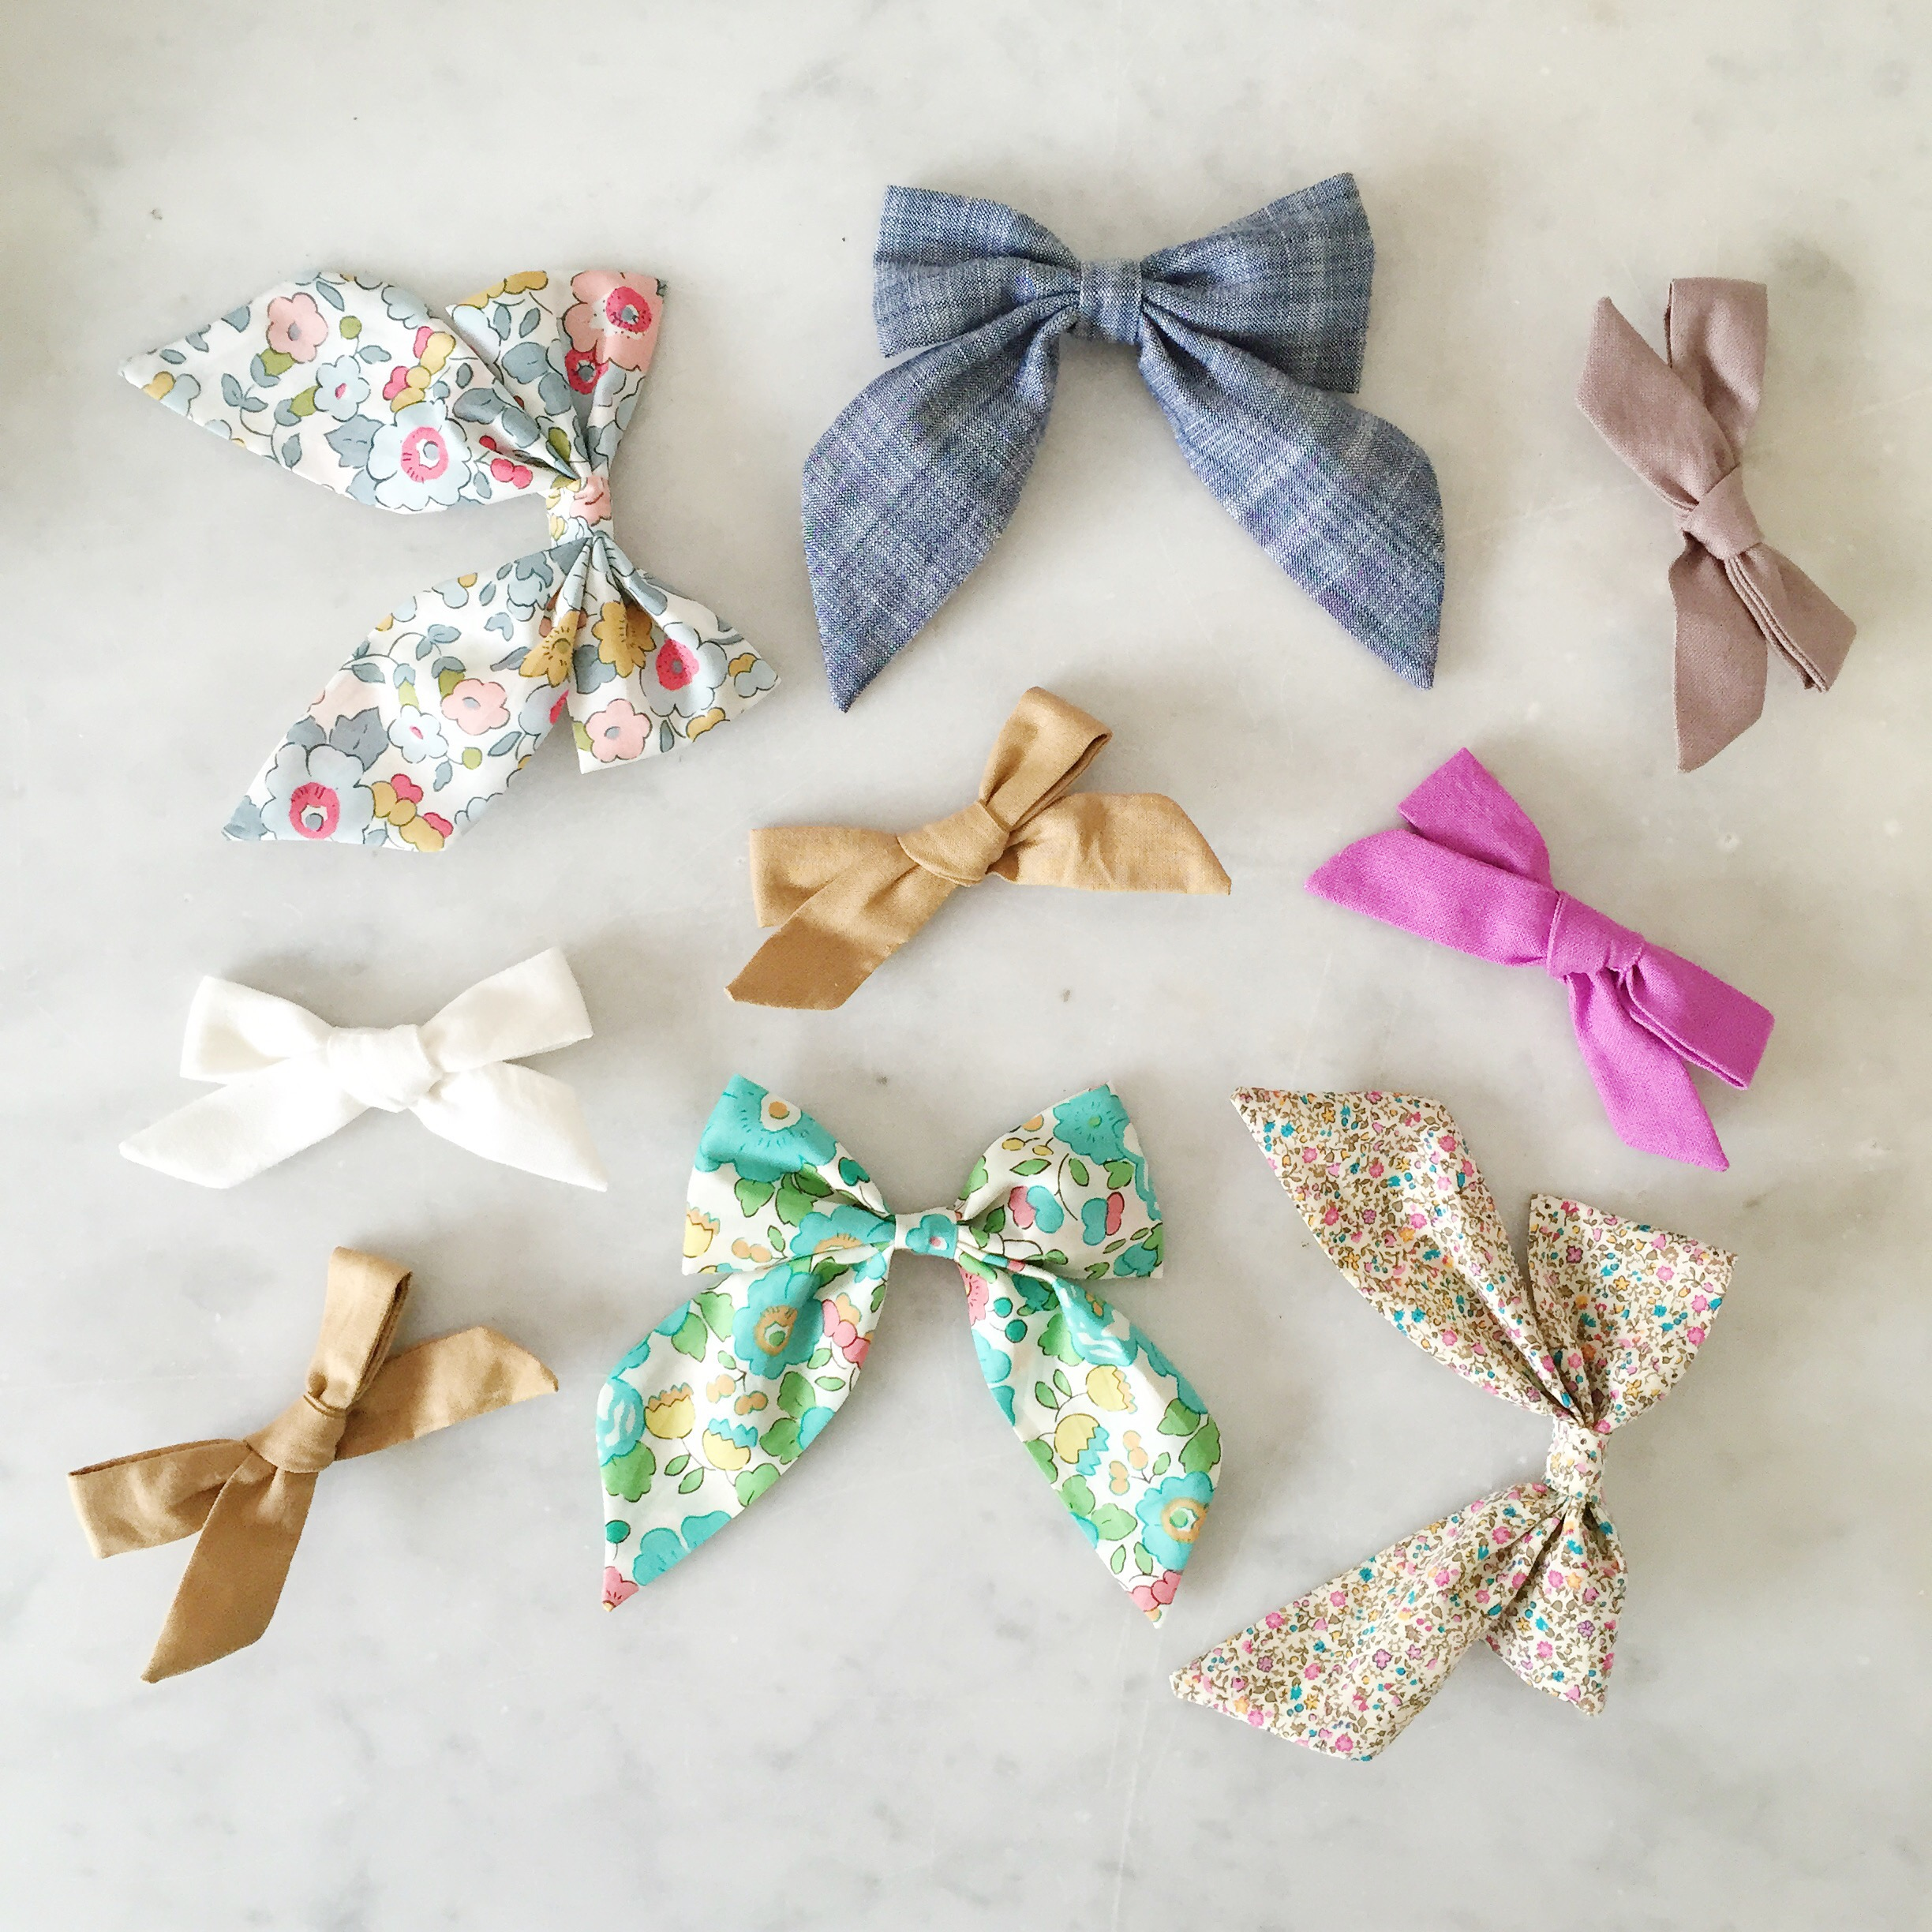 hair bows from FreeBabes